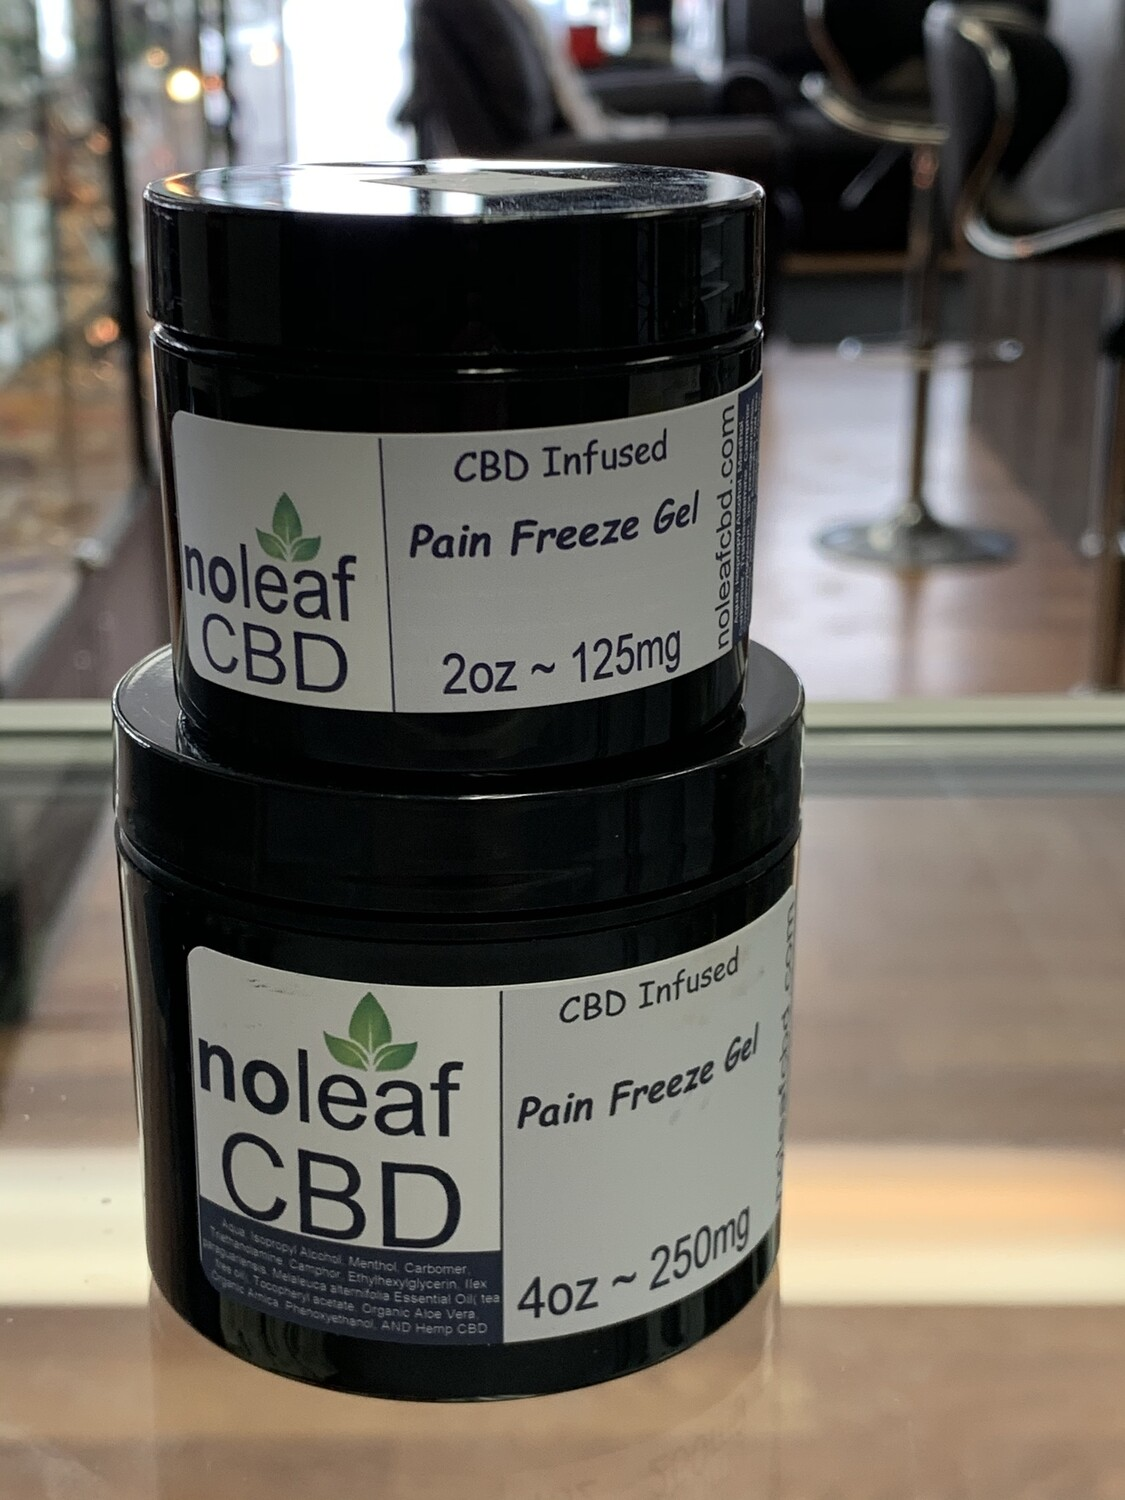 Pain Freeze Gel